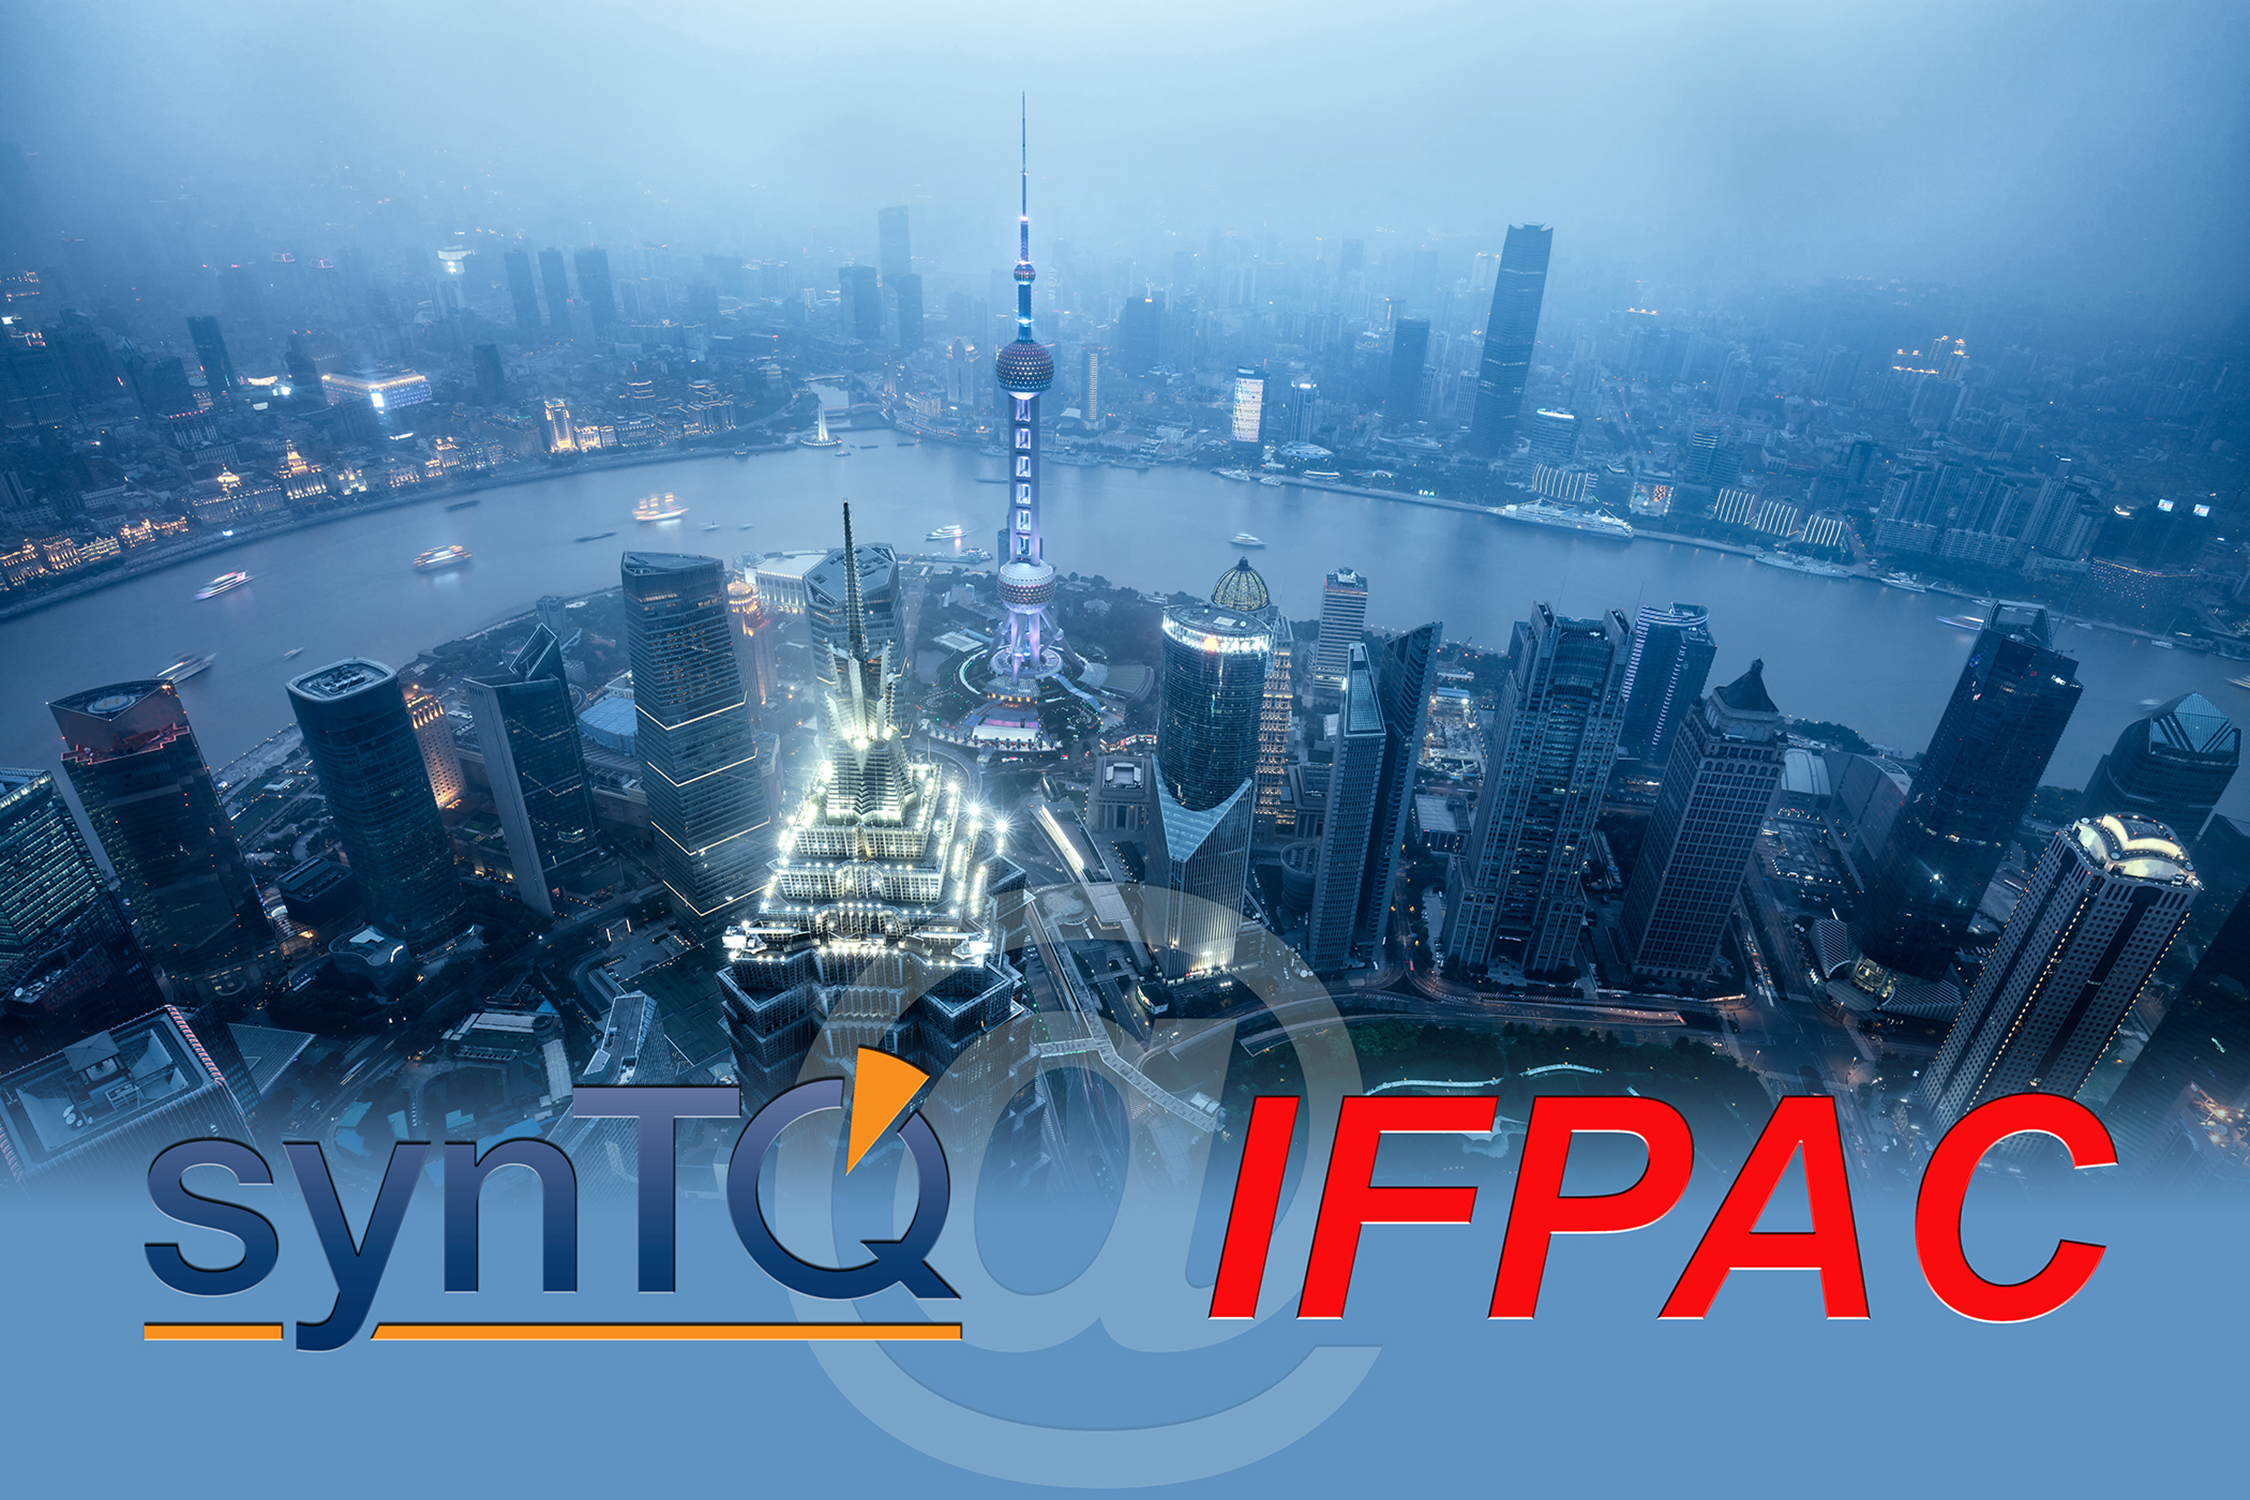 Optimal's proven synTQ PAT platform at IFPAC China 2017